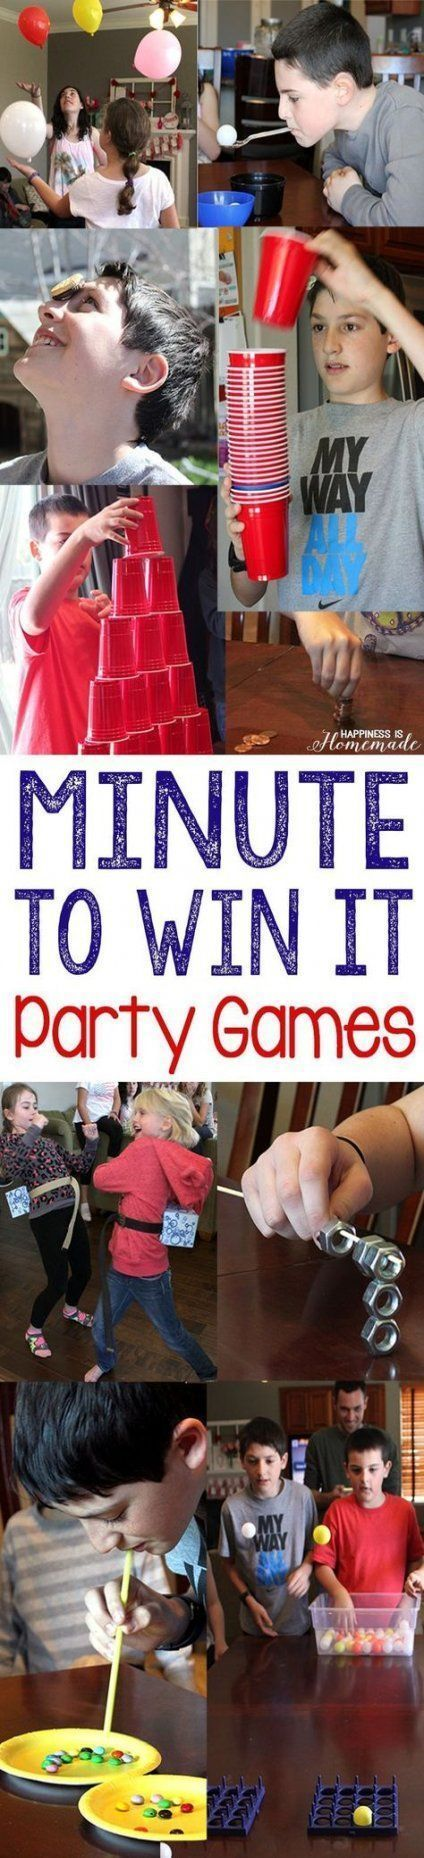 Indoor Group Games For Kids Children Minute To Win It 17